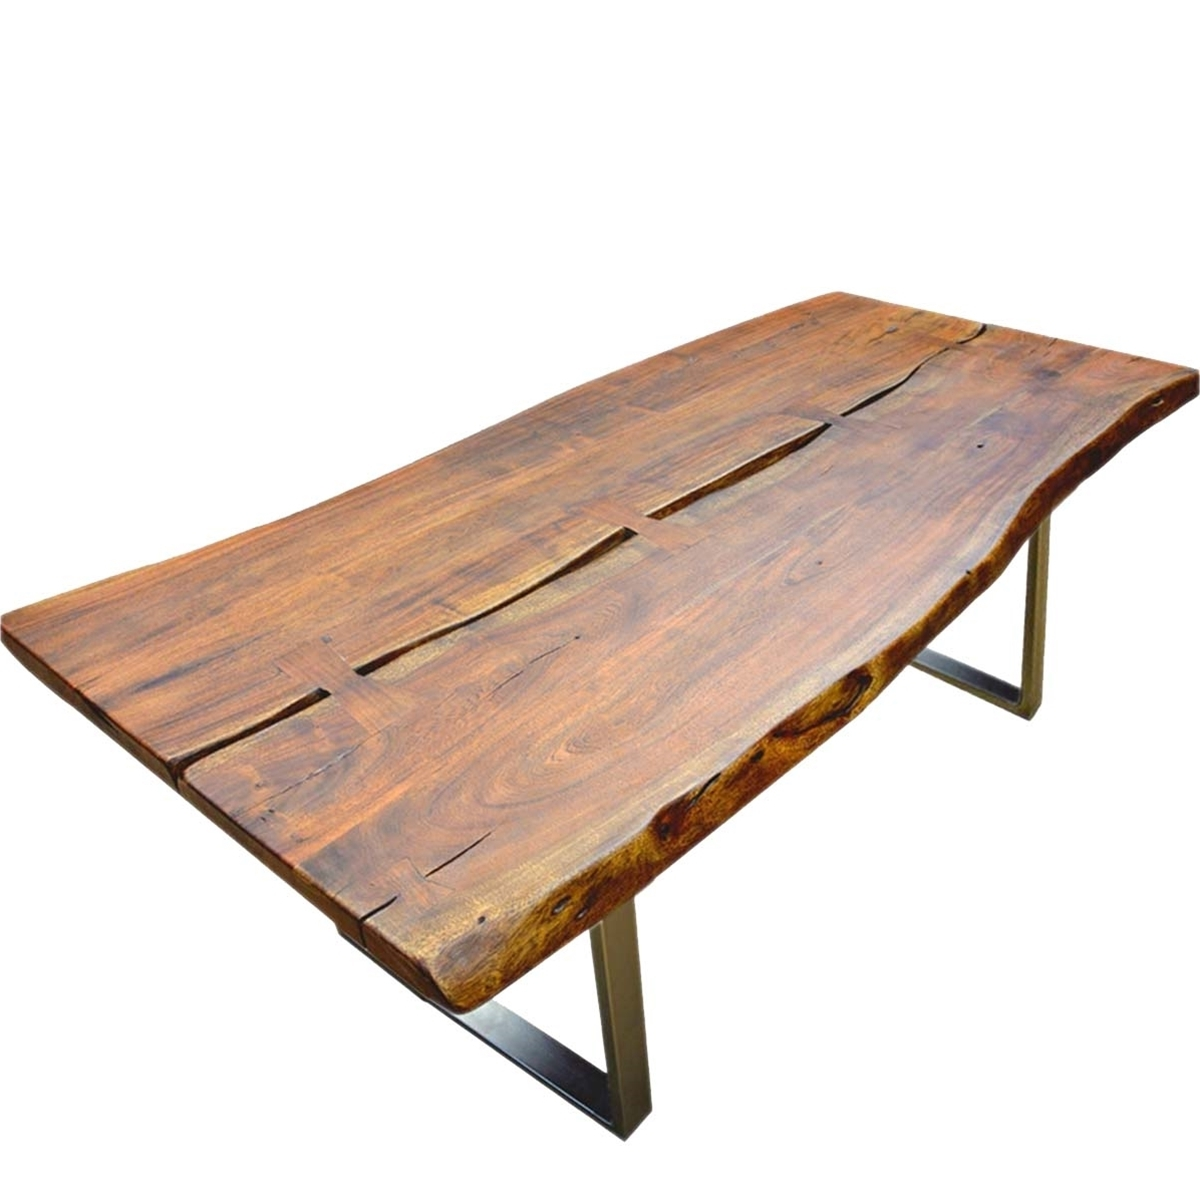 Jefferson Extension Round Dining Tables Pertaining To Most Popular Custom Made Large Rustic Dining Tables (View 5 of 25)